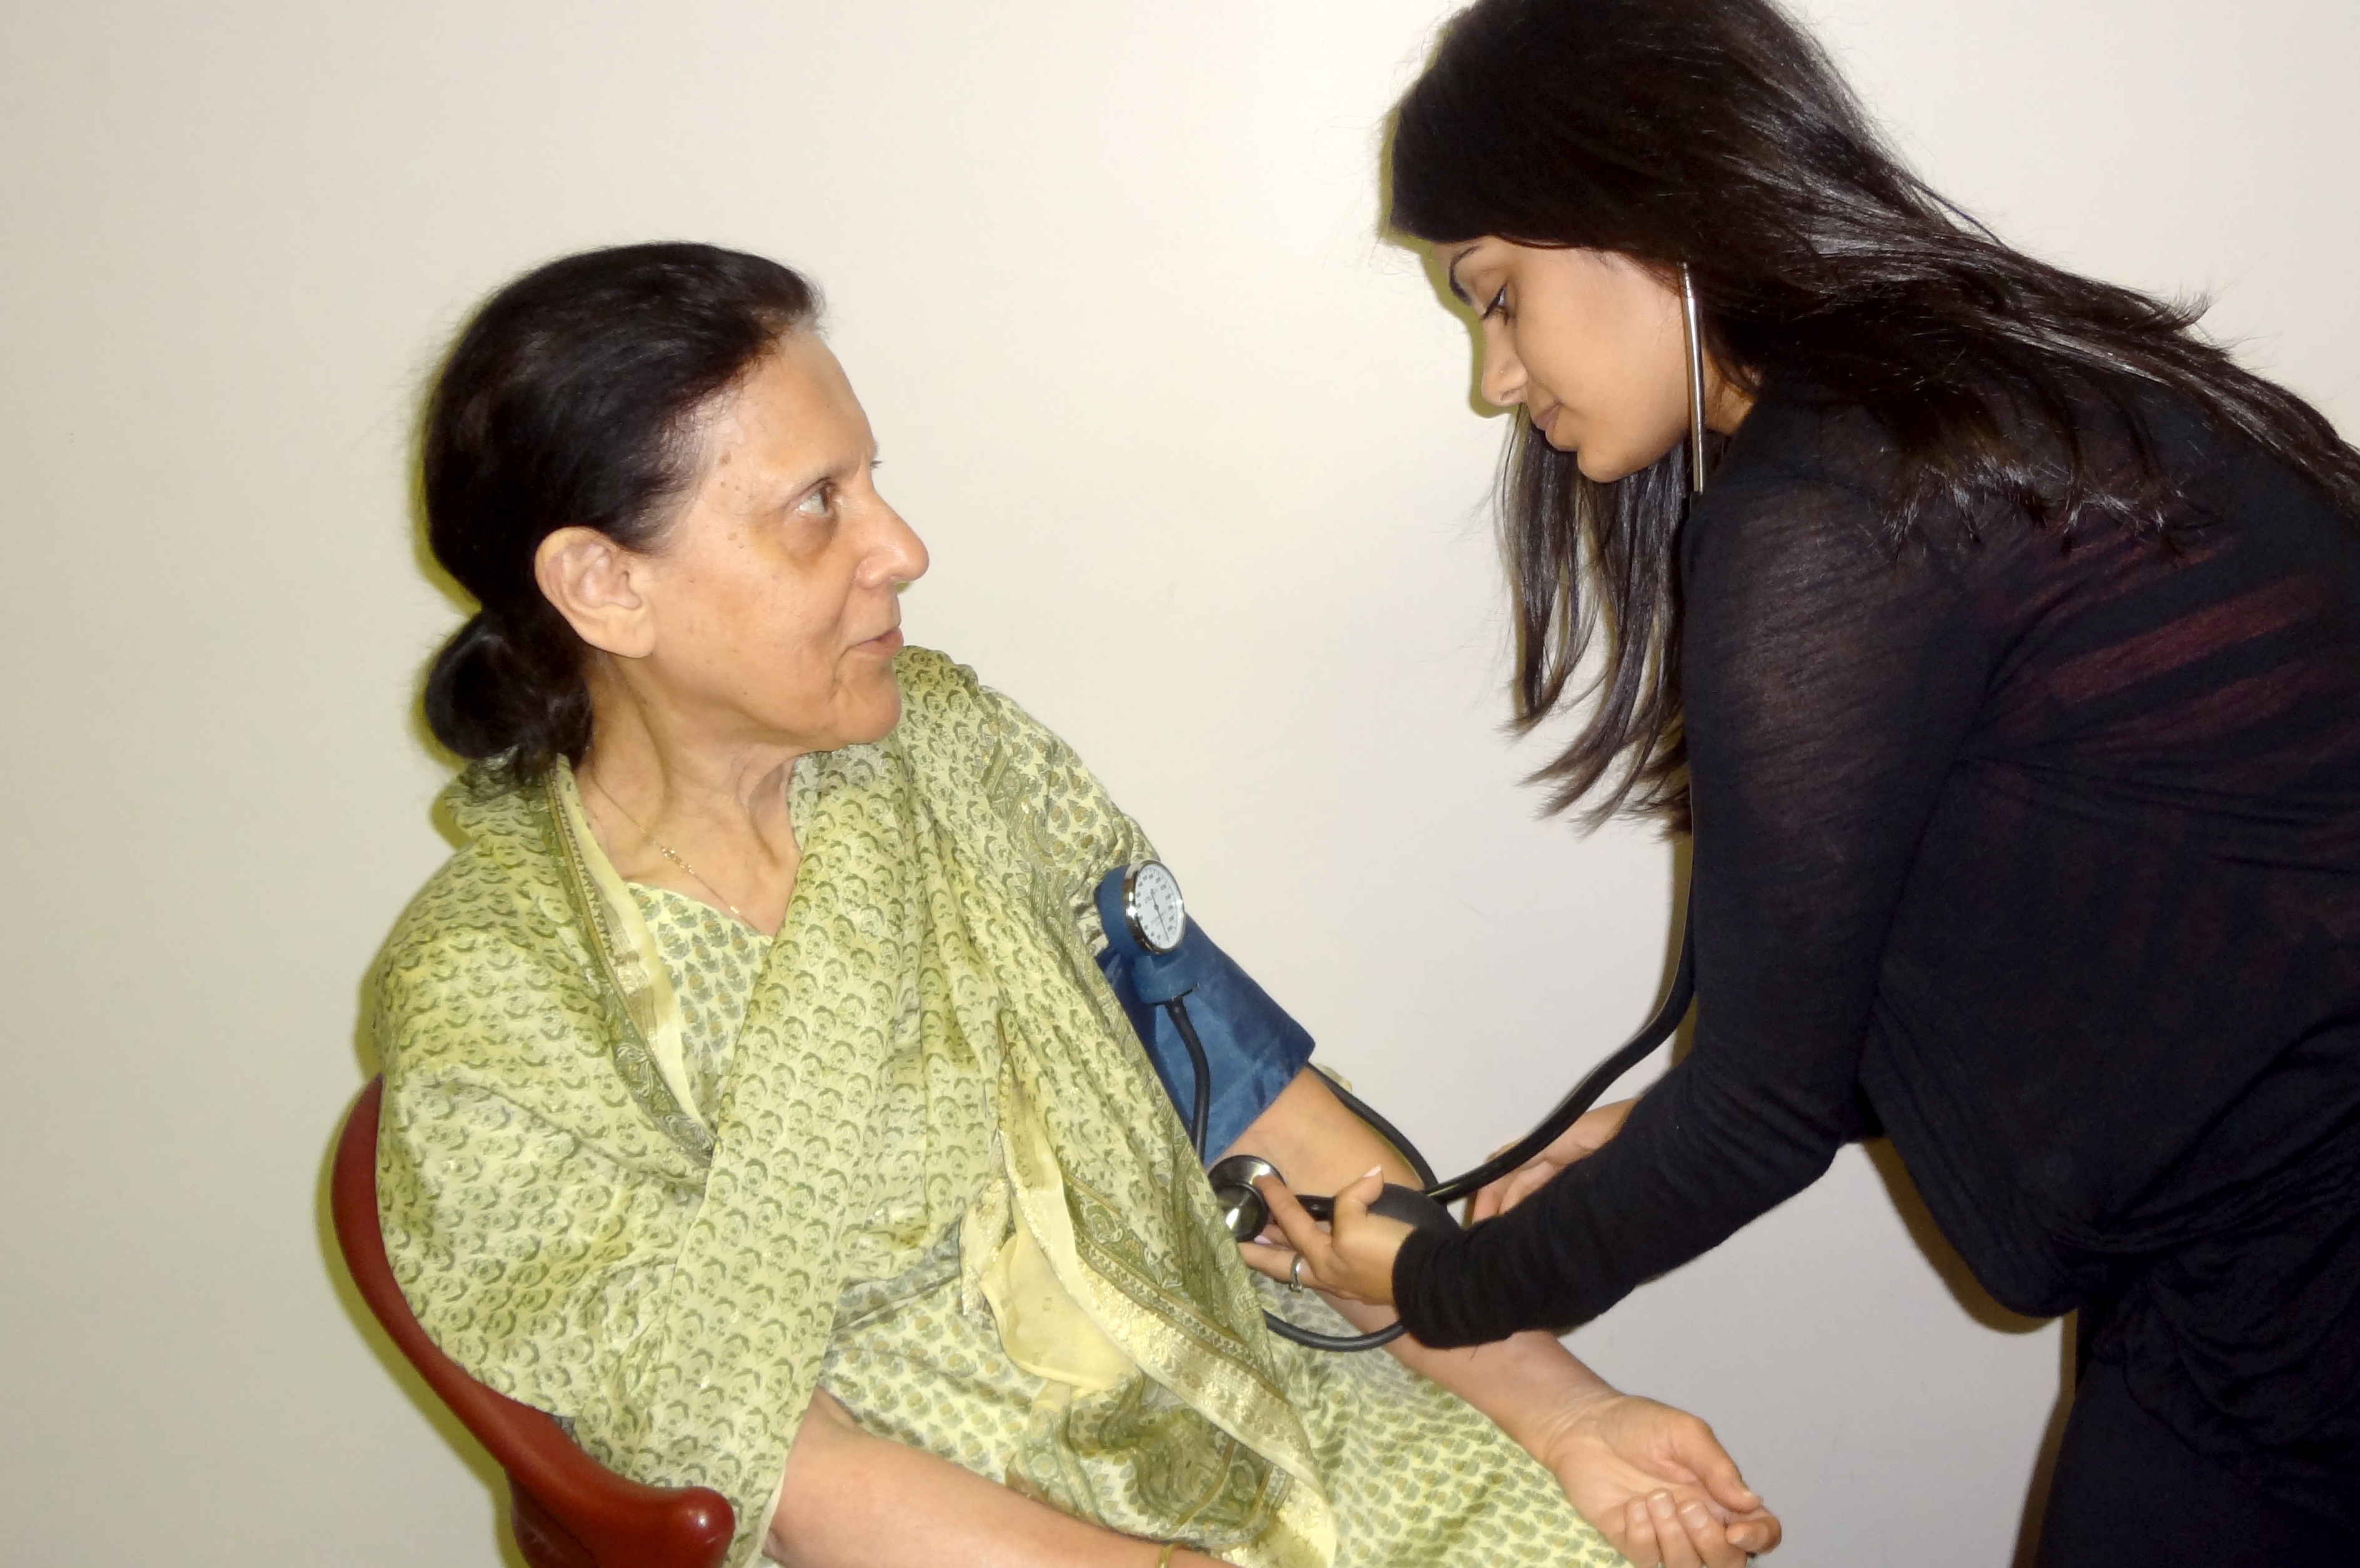 Having your blood pressure checked regularly can help you to monitor your risk level for non-communicable diseases. Photo: Raeesa Bhanji